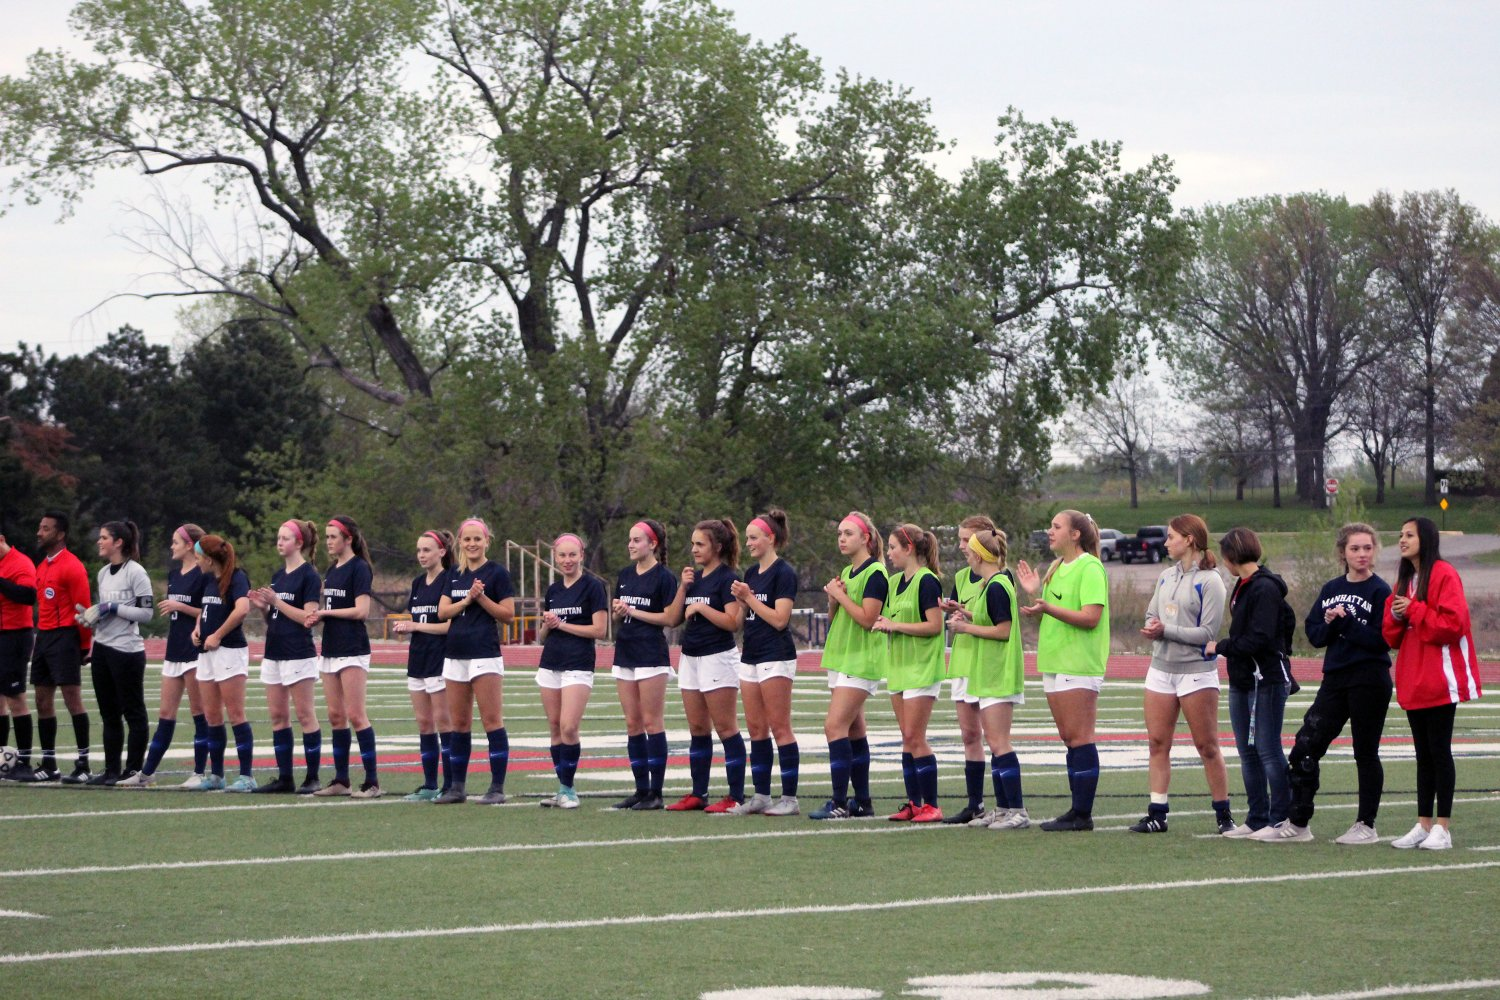 The girls soccer team gets announced before their game on Tuesday evening, April 23rd.